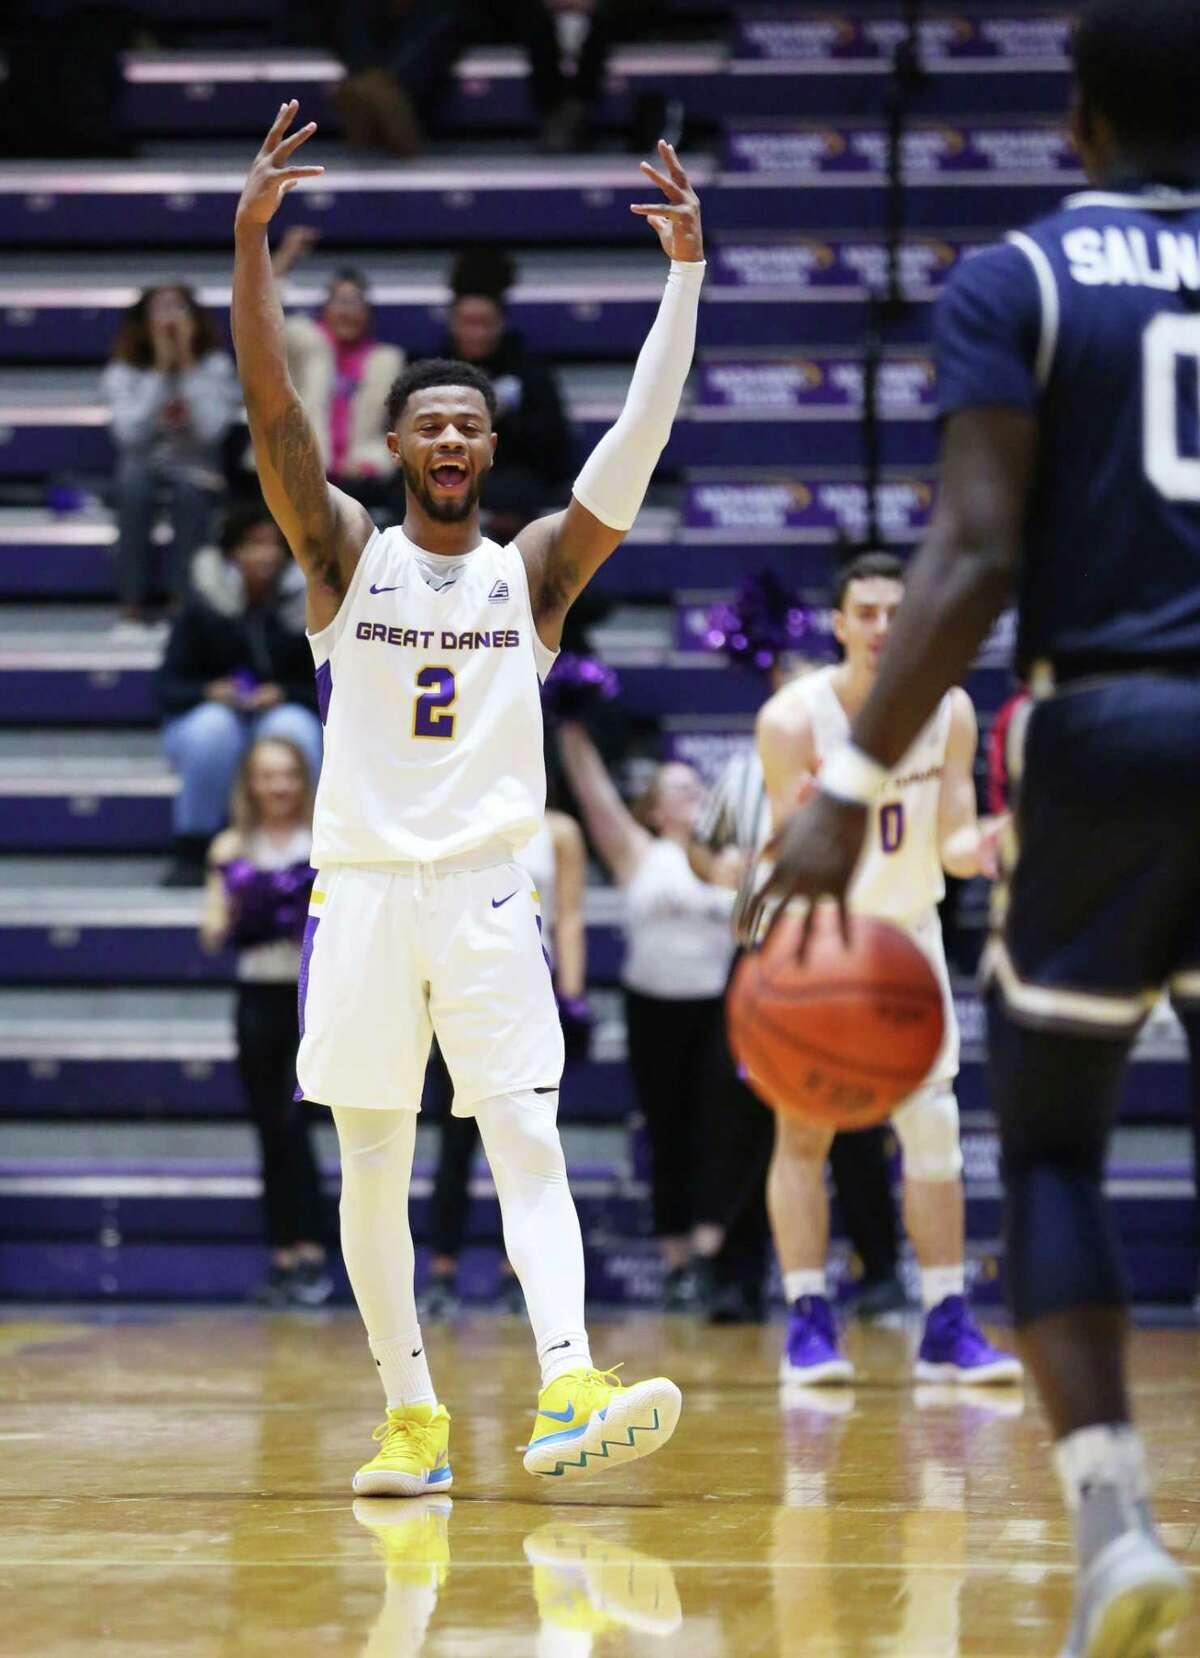 UAlbany guard Ahmad Clark celebrates a play during a game against Monmouth Saturday Dec. 8, 2018 at the SEFCU Arena. (Phoebe Sheehan/Special to The Times Union)